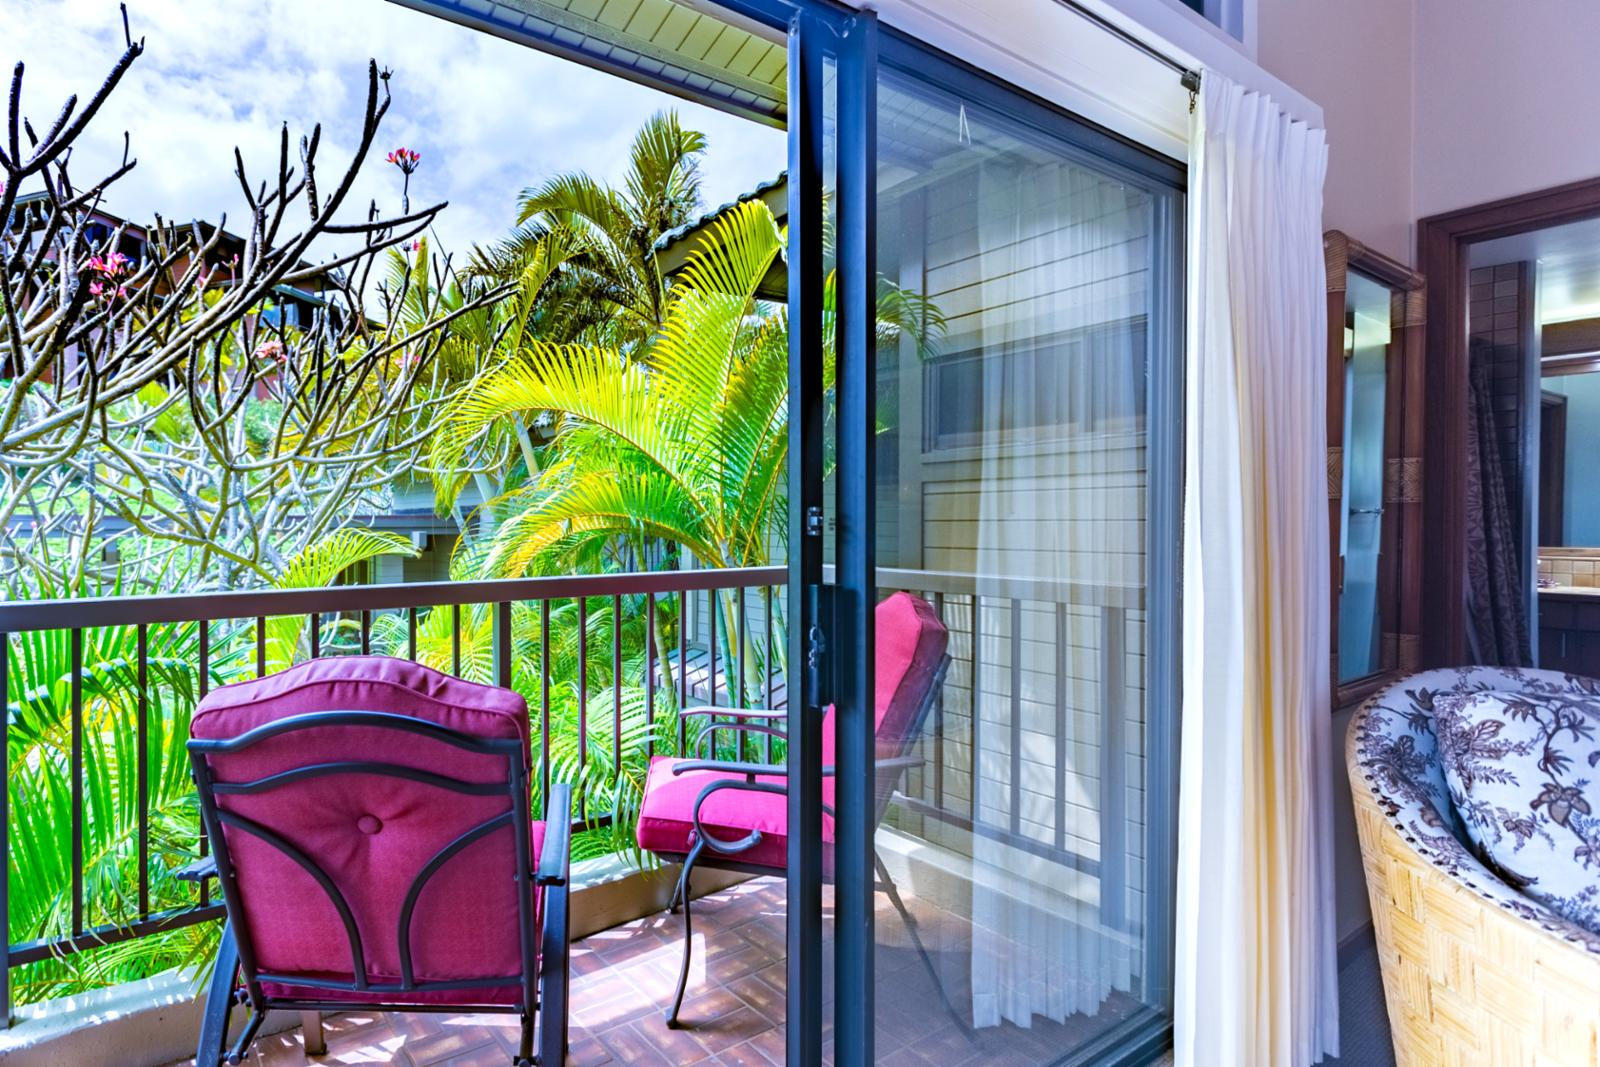 The small lanai off the master bedroom.